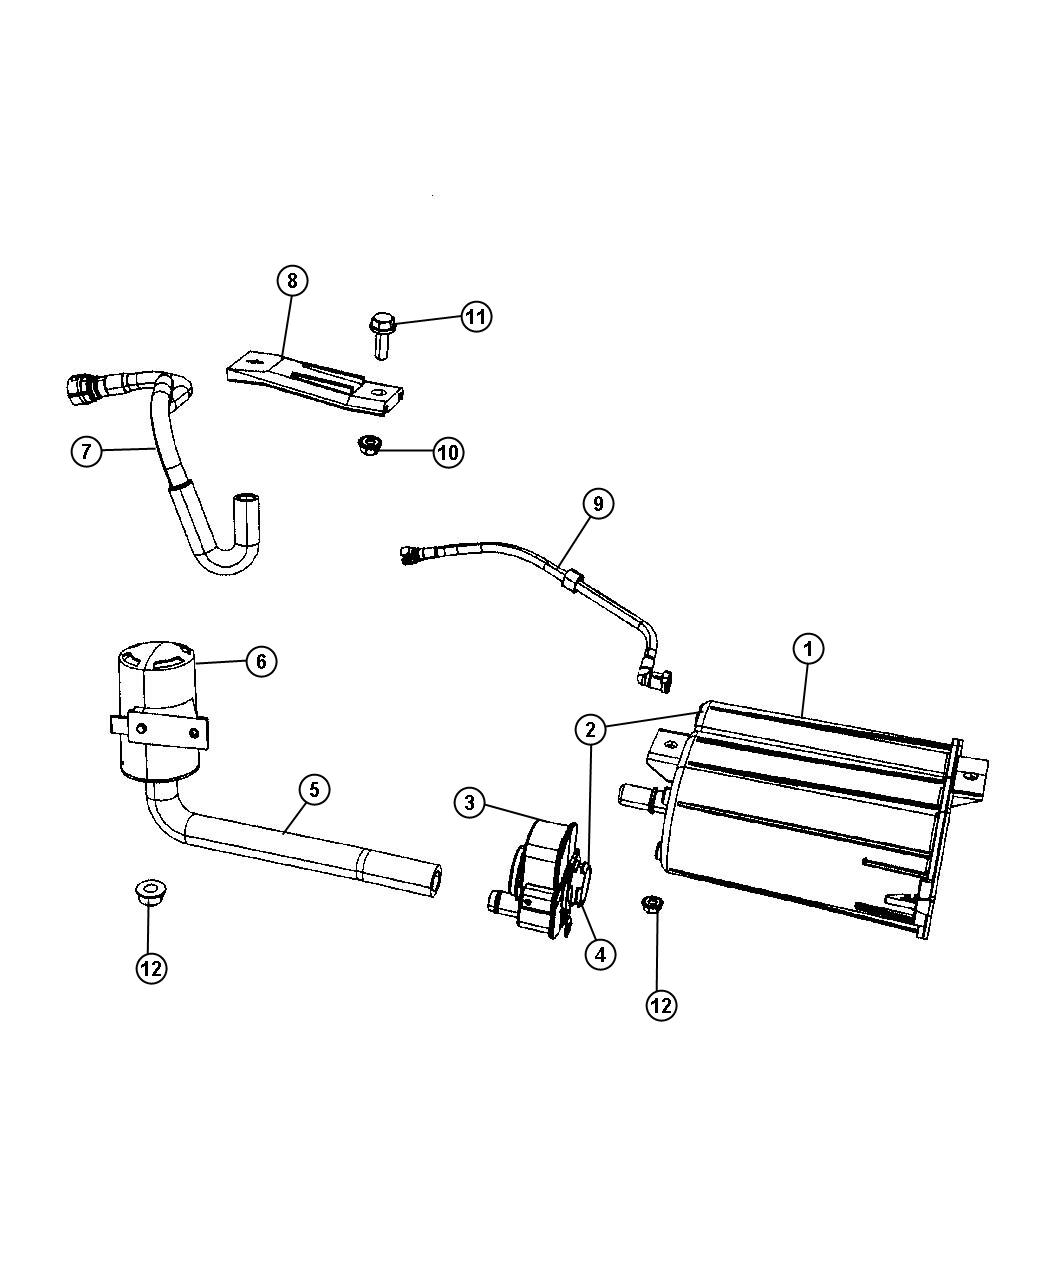 Chevy Fuel Filter Location